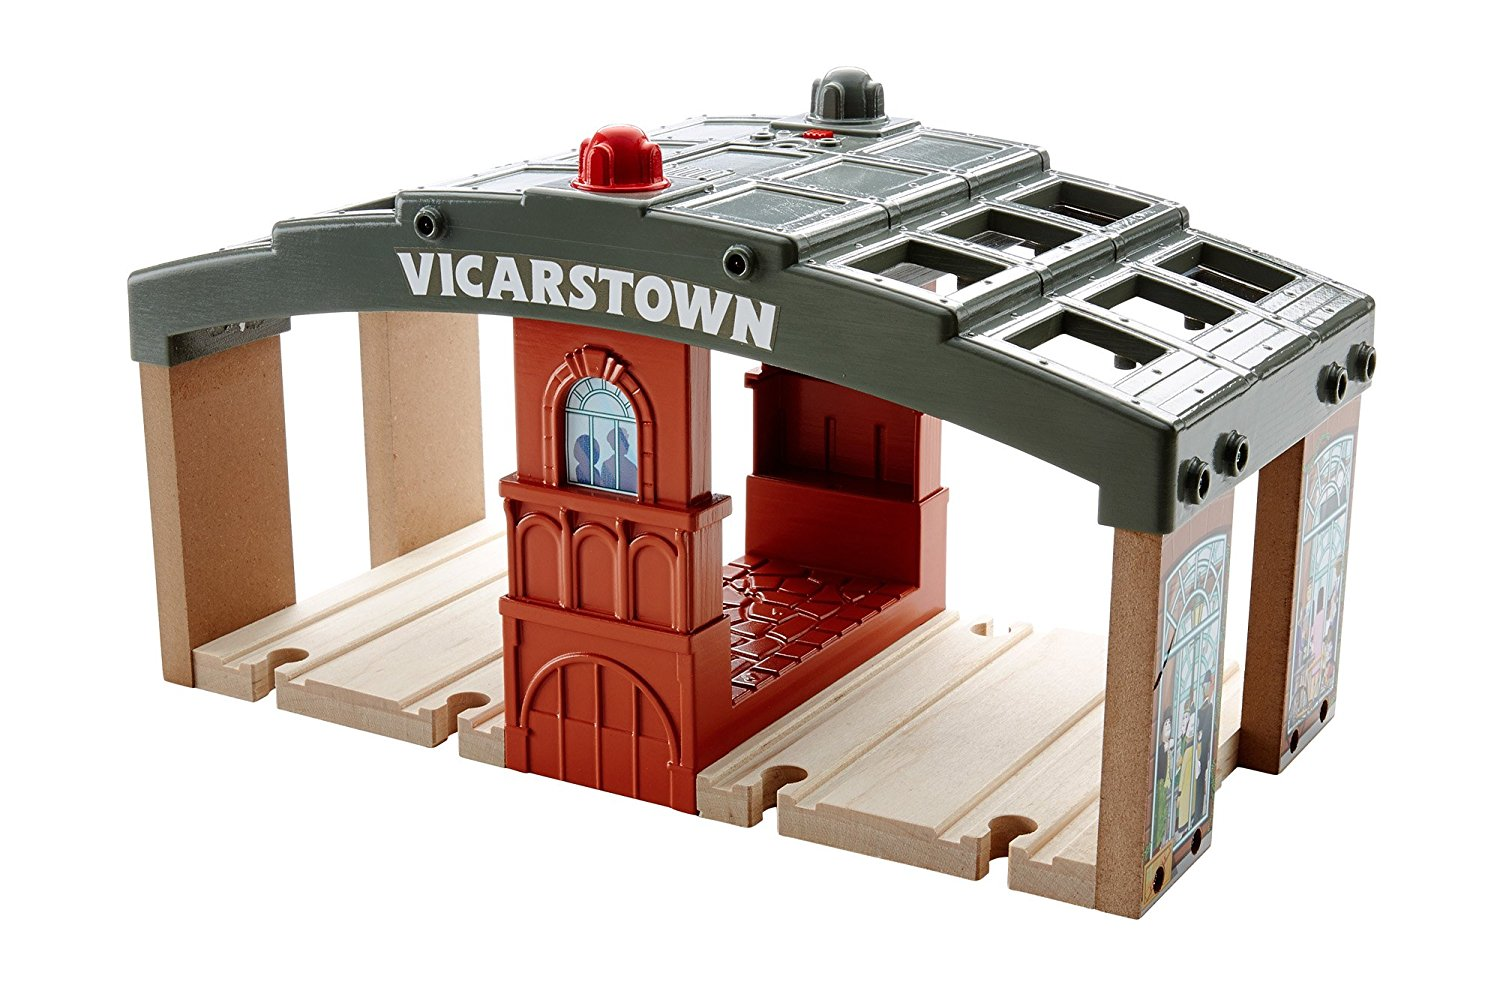 Fisher Price Thomas & Friends Wooden Railway, Vicarstown Station Set - Battery Operated DFW92